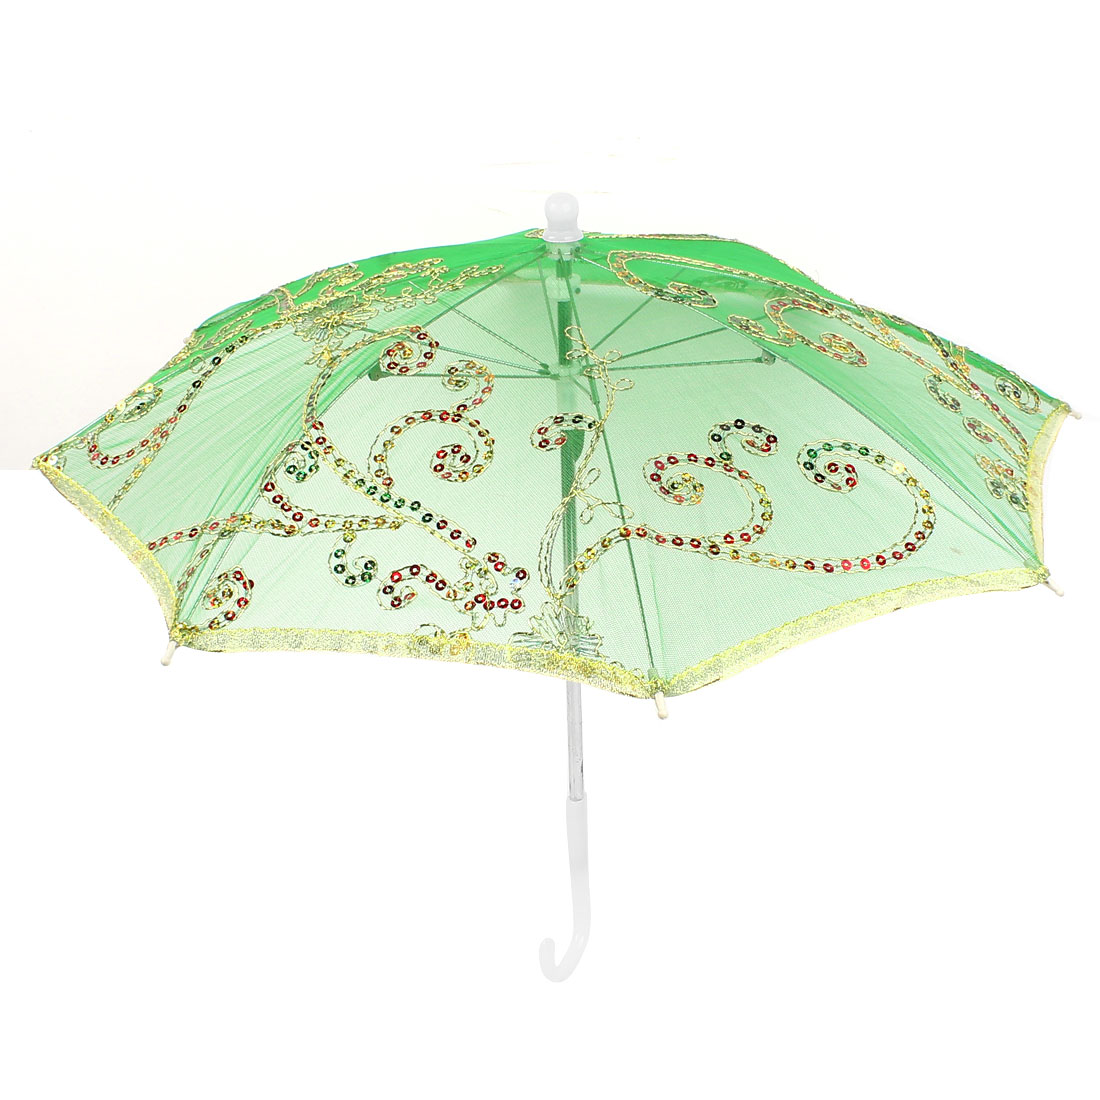 Gold Tone Embroidery Flower Folding Dancing Parasol Umbrella Green